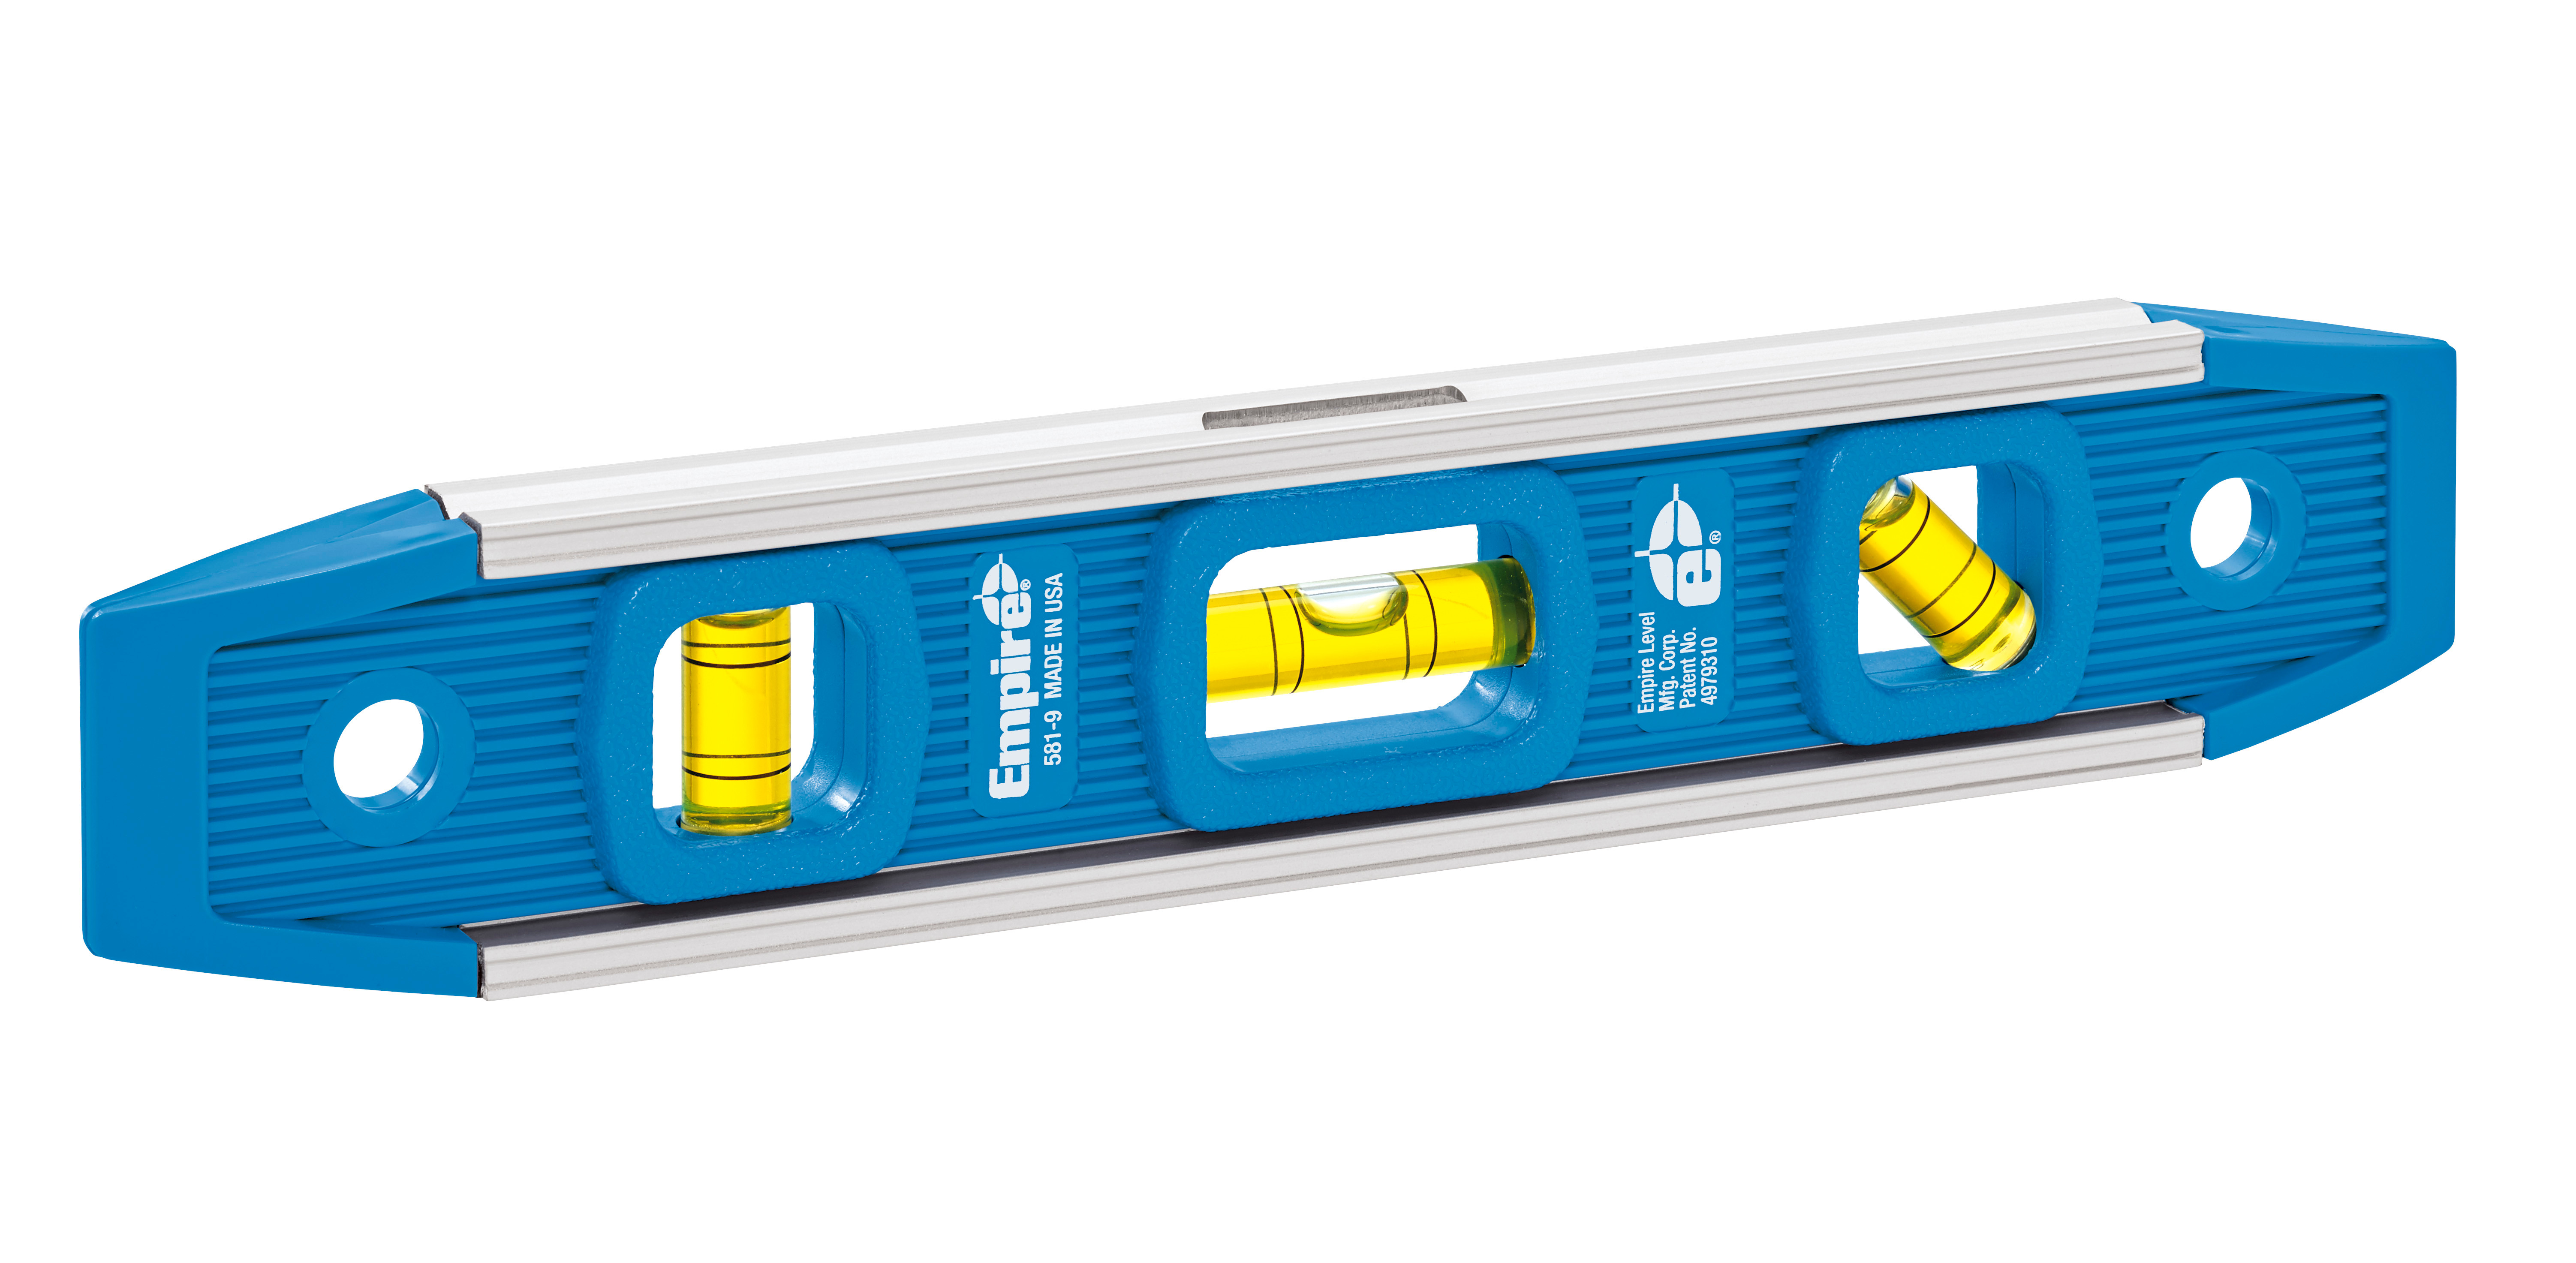 Milwaukee® Empire® 581-9 Magnetic Torpedo Level, 9 in L, 3 Vials, Polycast, (1) 45 deg, (1) Level, (1) Plumb Vial Position, 0.001 in Accuracy